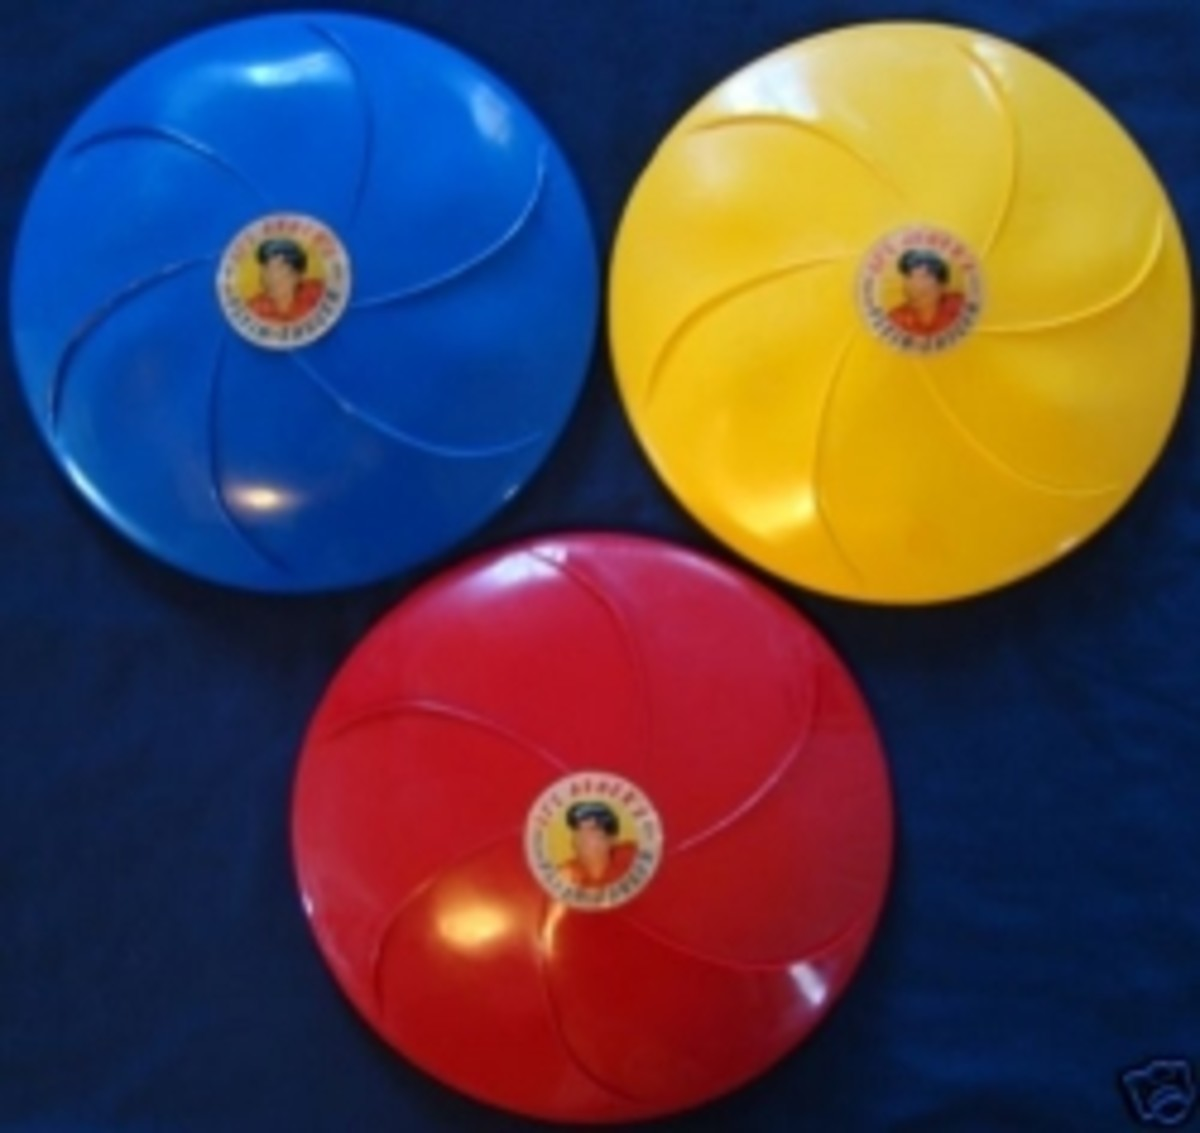 Rare Li'l Abner Flyin-Saucer Frisbees from the 1950s.